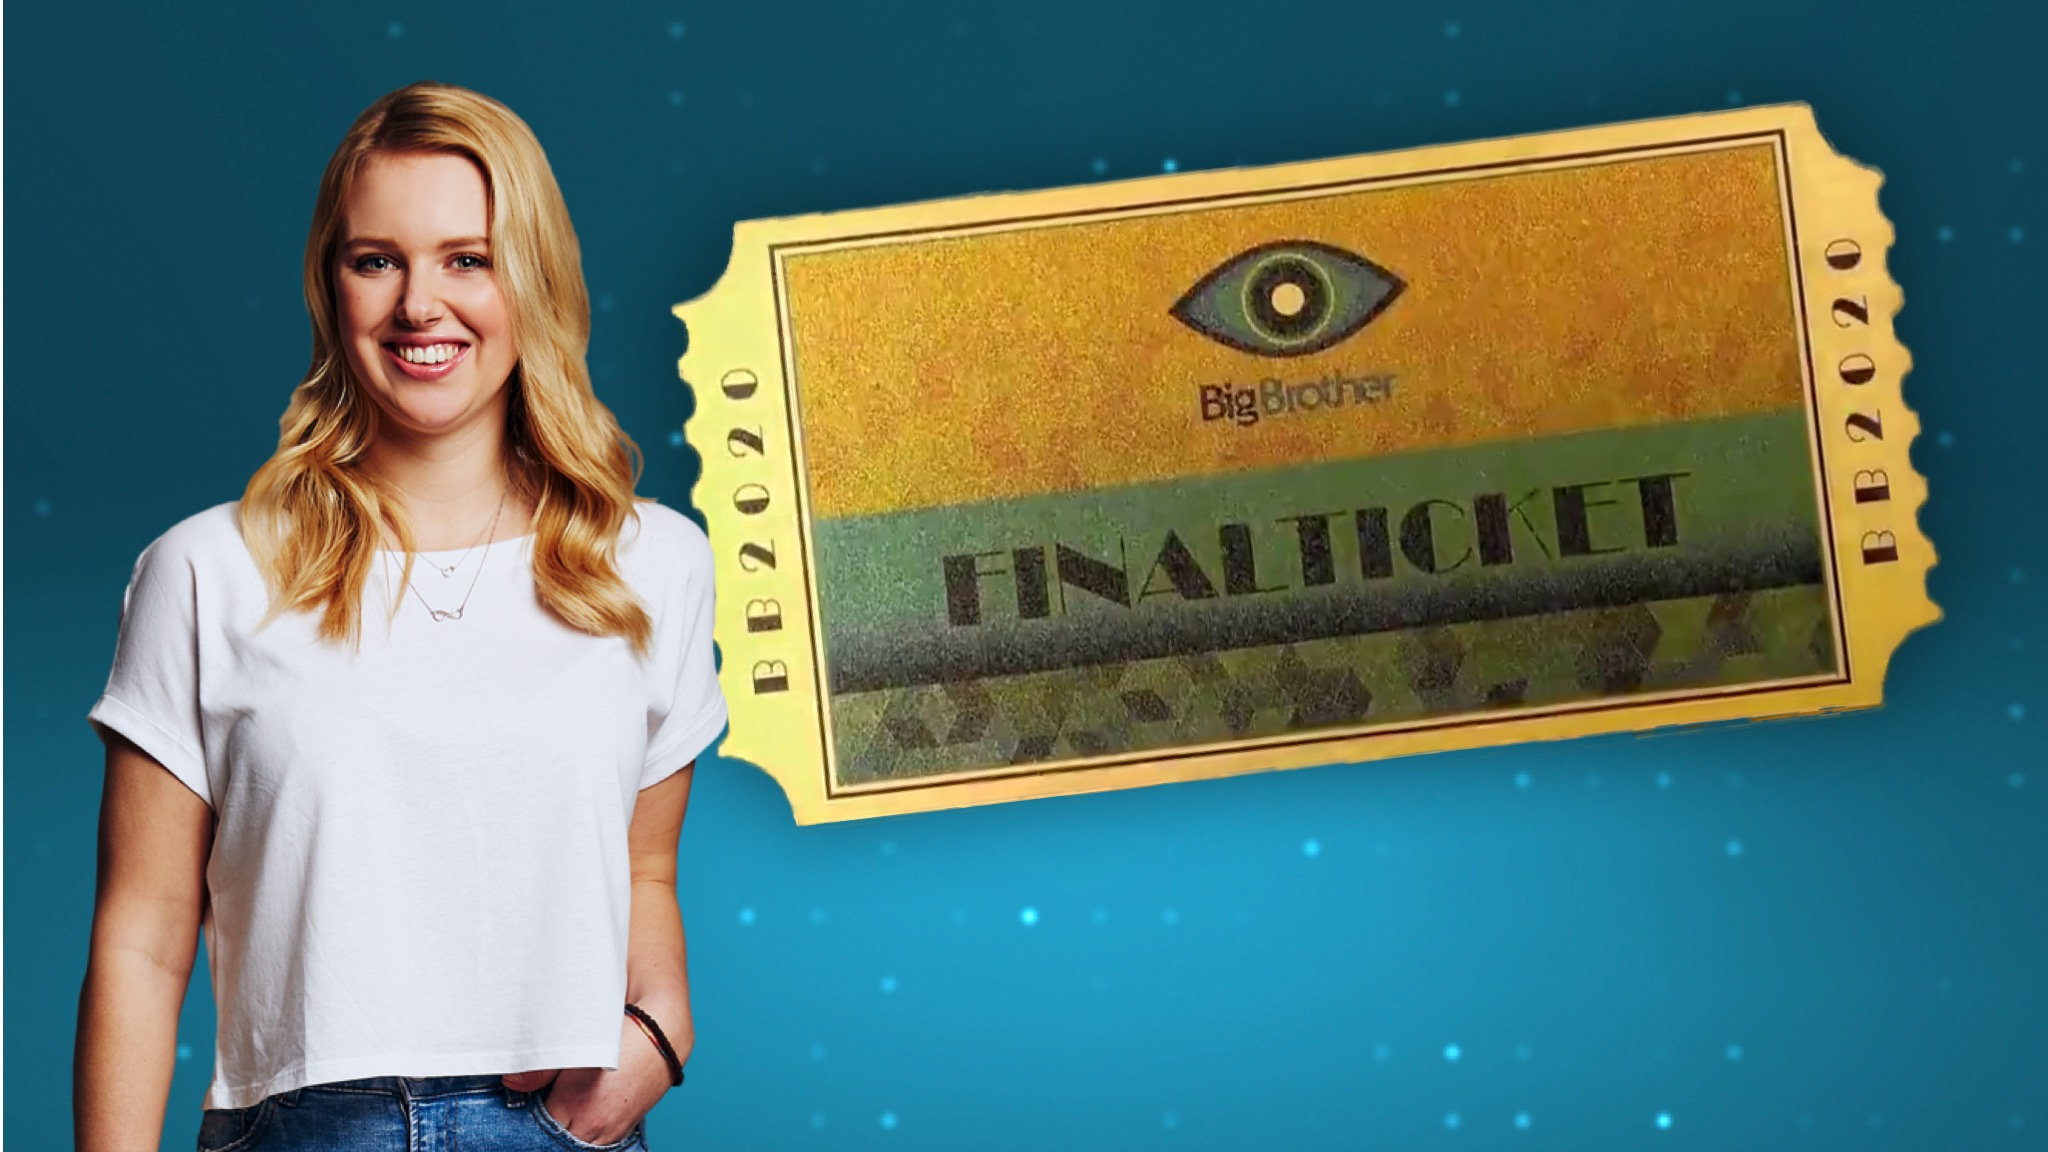 Big Brother 2020 Goldene Finalticket Rebecca